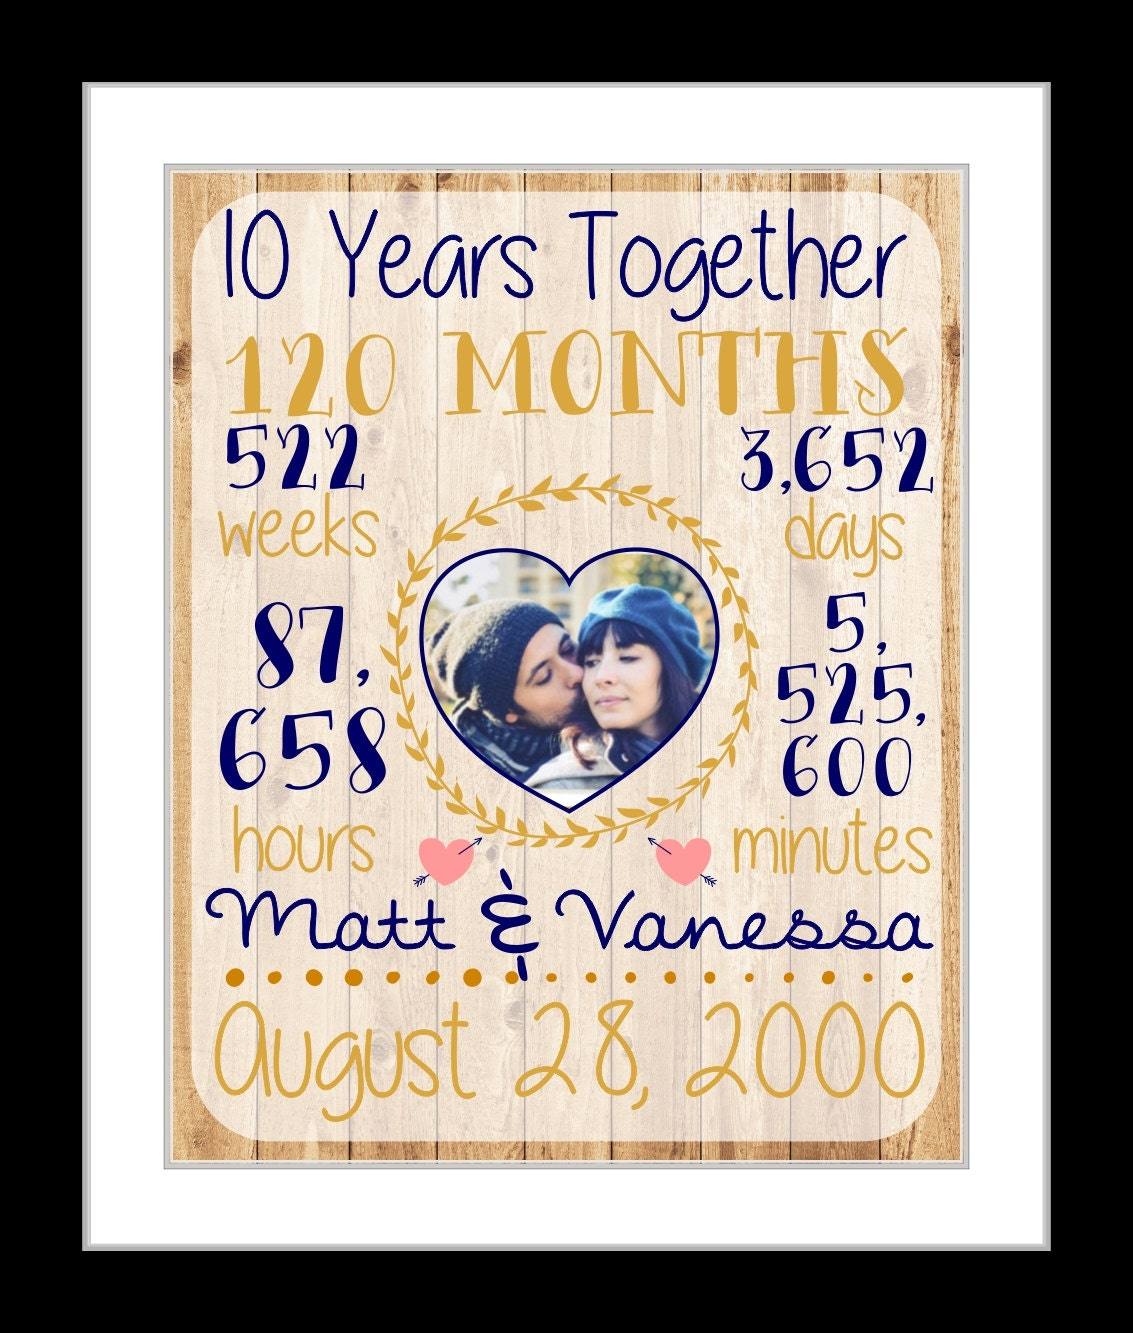 10 Year Wedding Anniversary Gift Ideas For Couple: 10 Year Anniversary Gift For Boyfriend Husband Wife Spouse